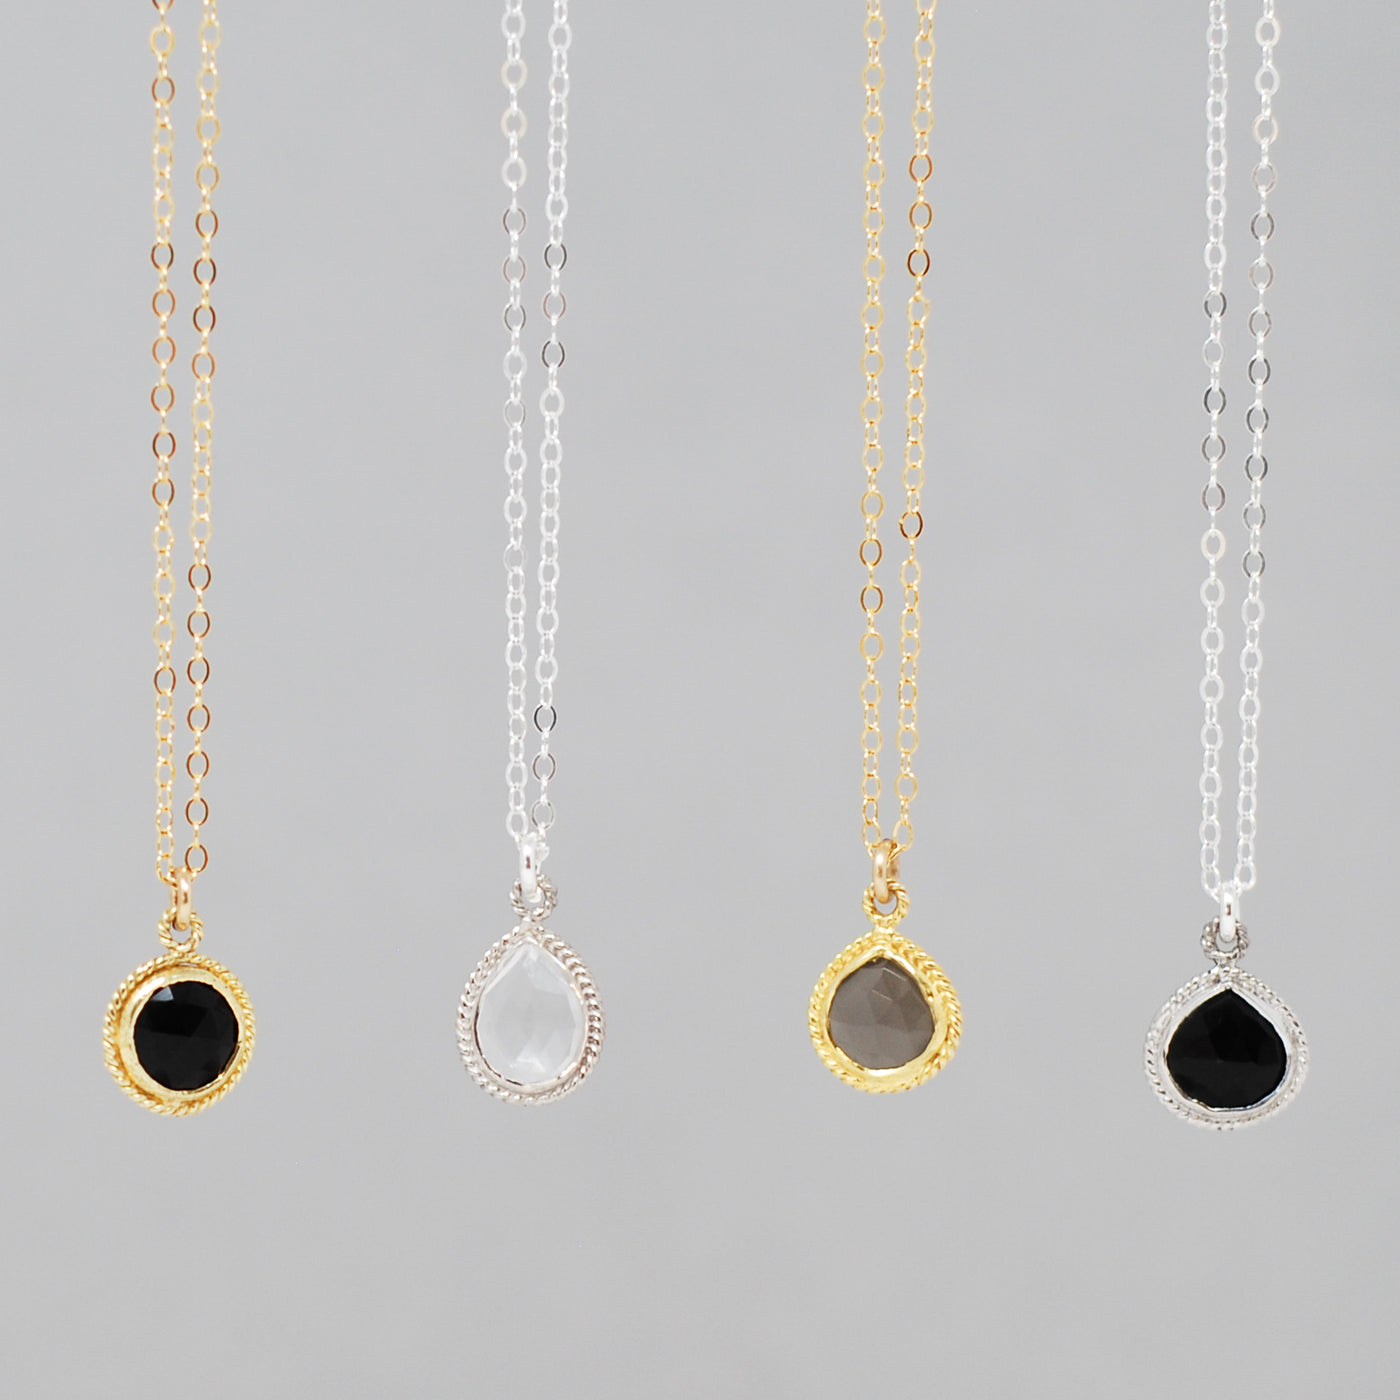 Petite Gemstone Necklaces